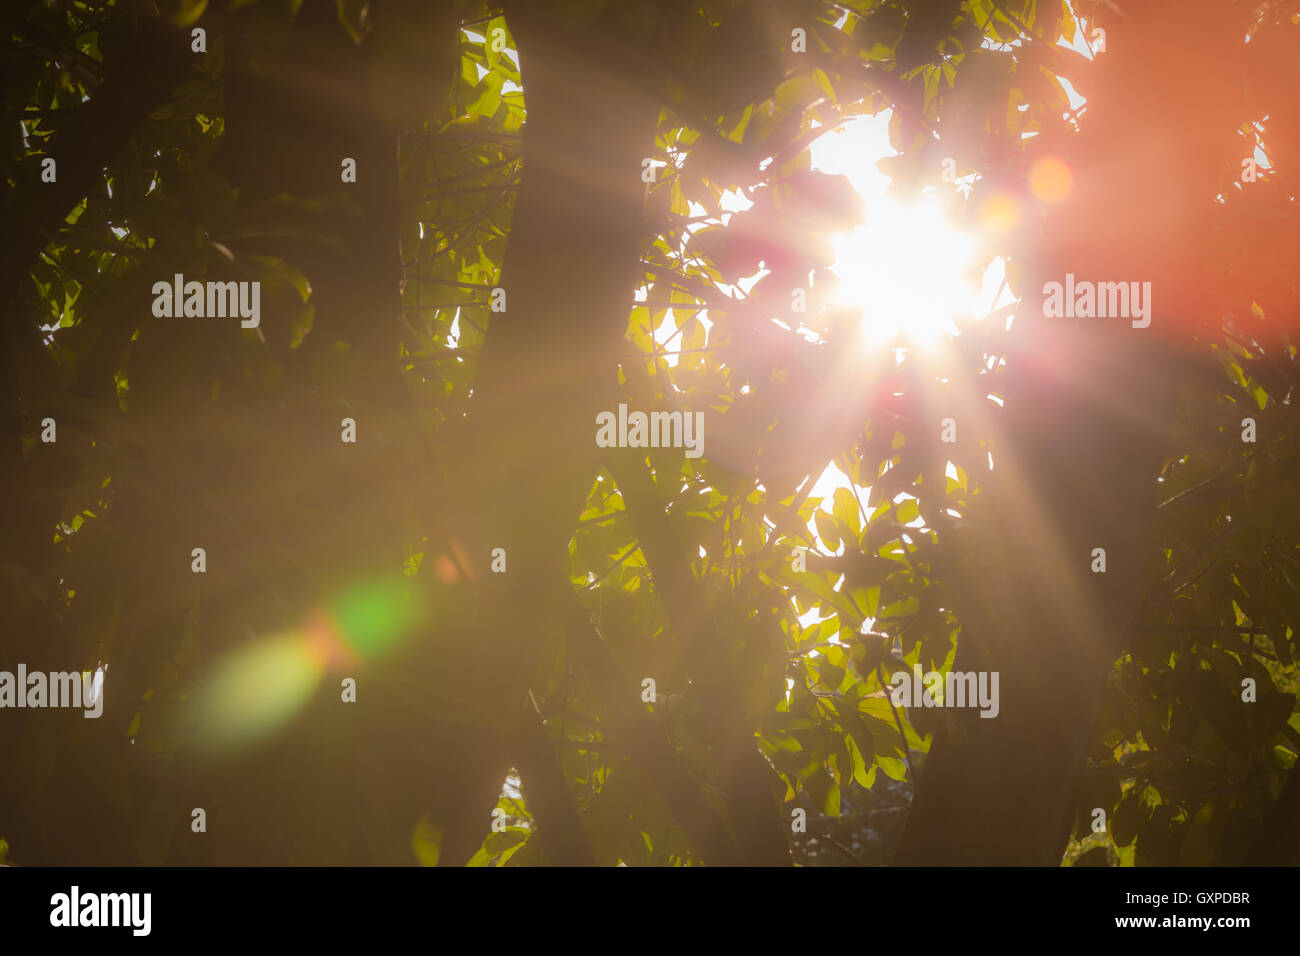 Sun ray and lens flare through leaves of tree. - Stock Image